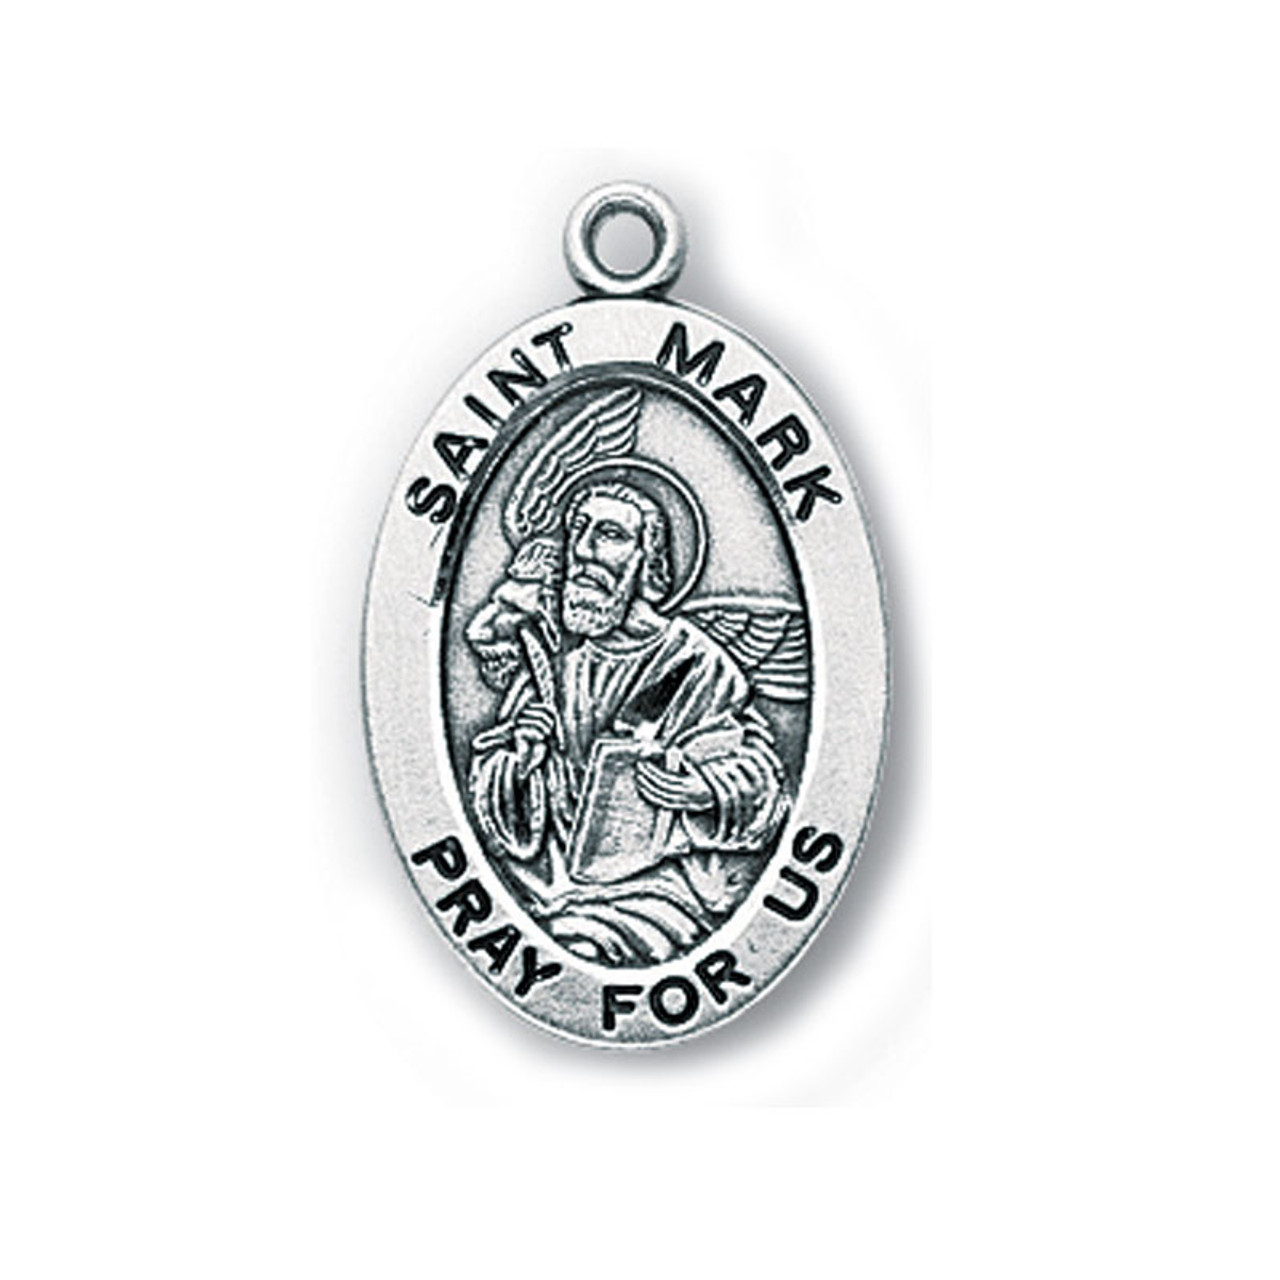 Small St. Mark Medal Necklace